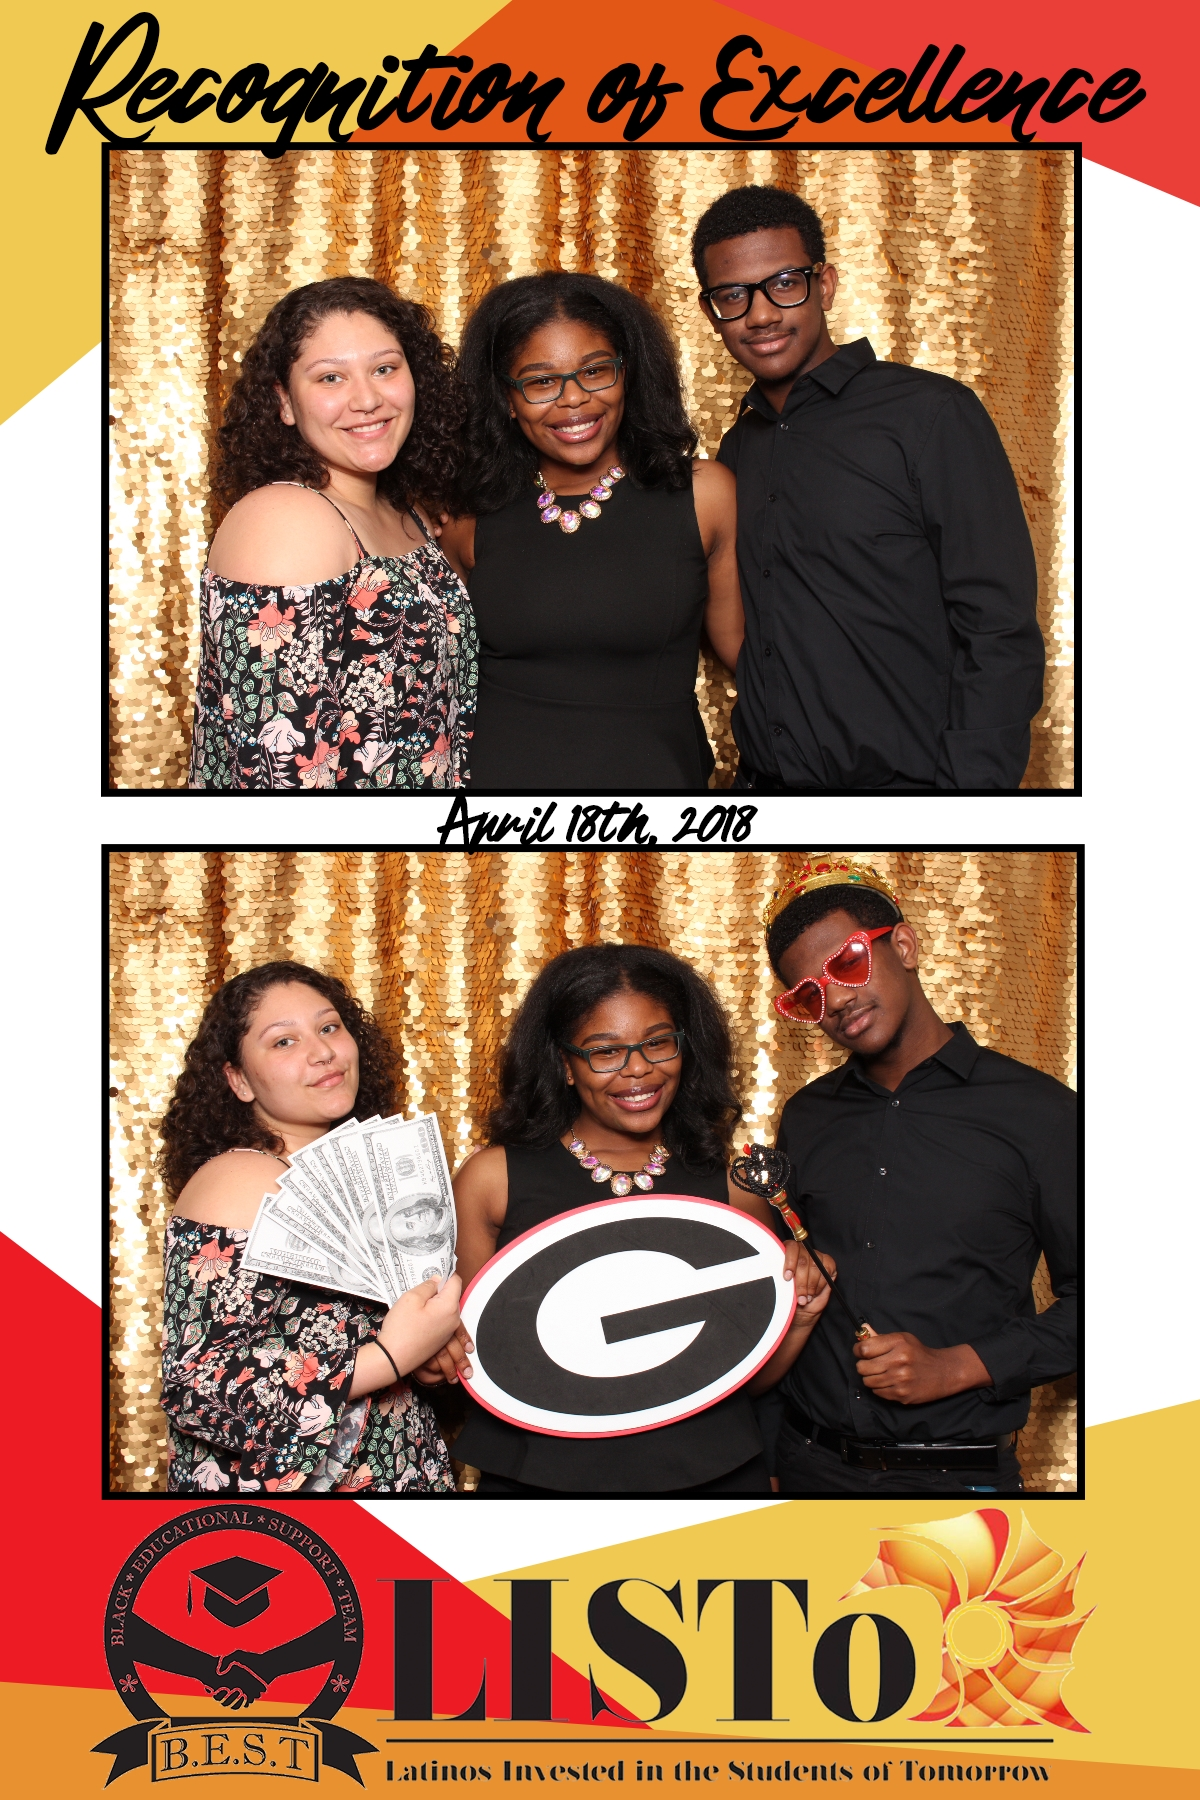 photo booth athens recognition.jpg